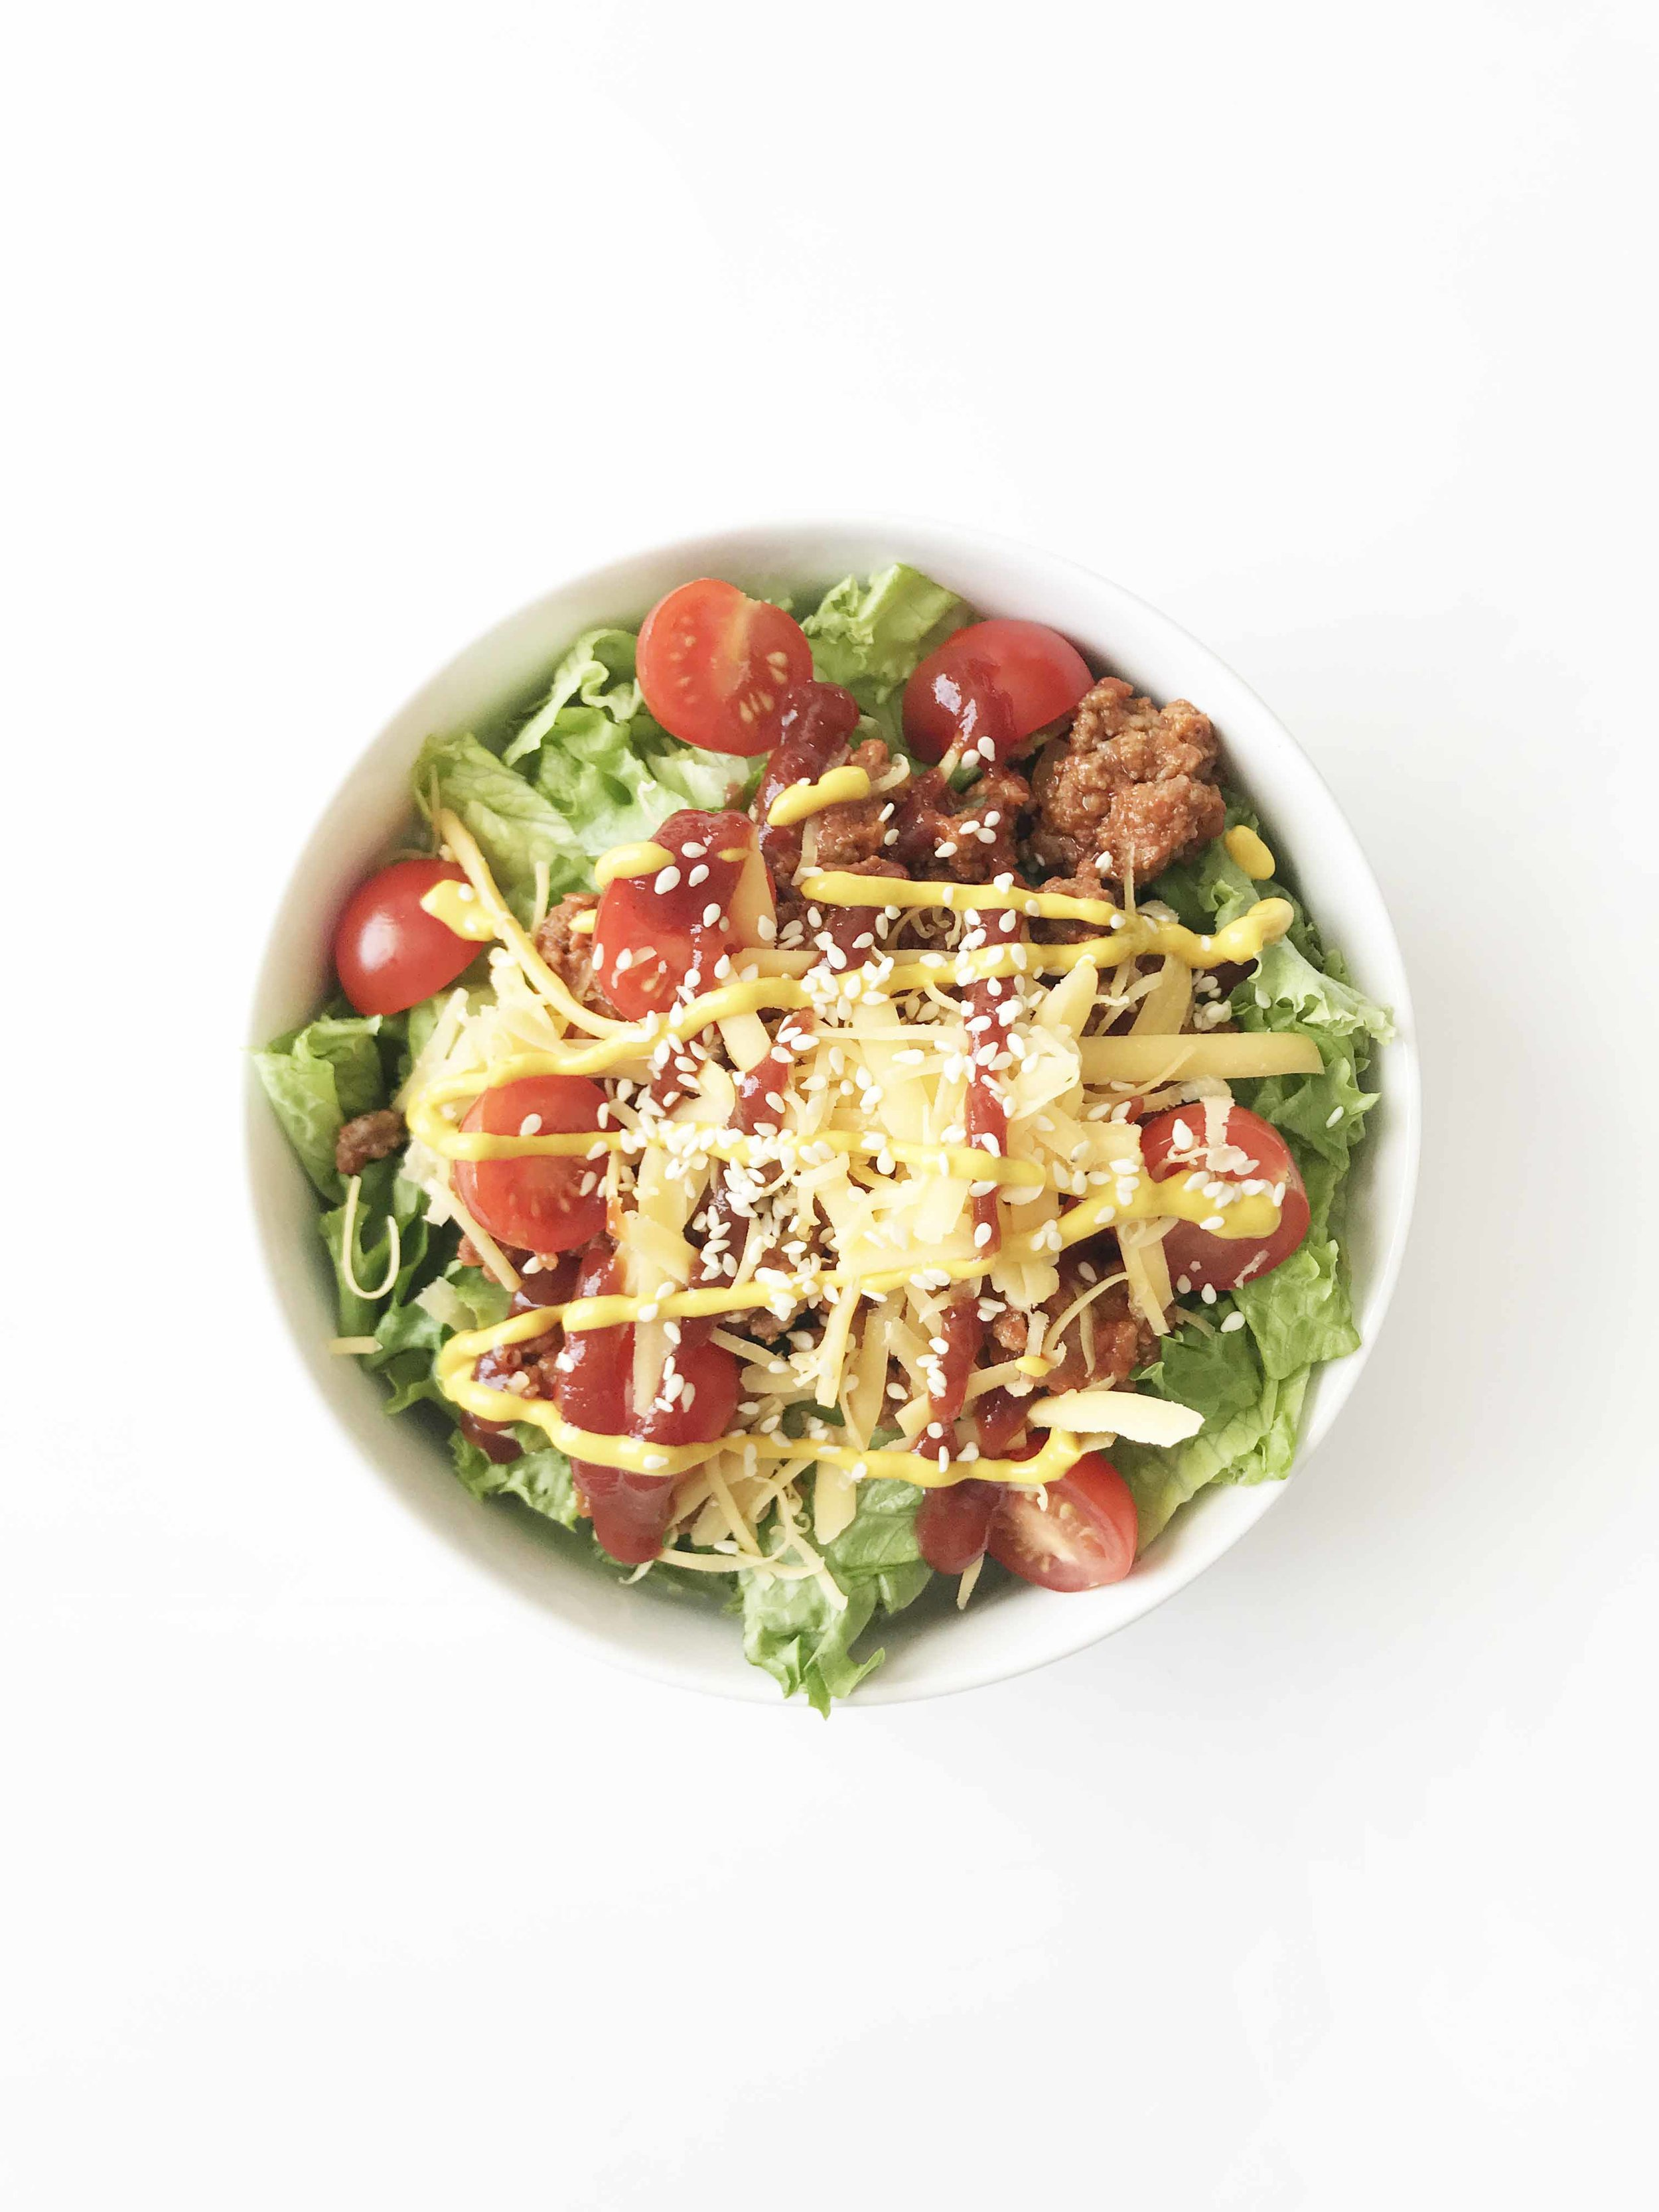 cheeseburger-salad5.jpg